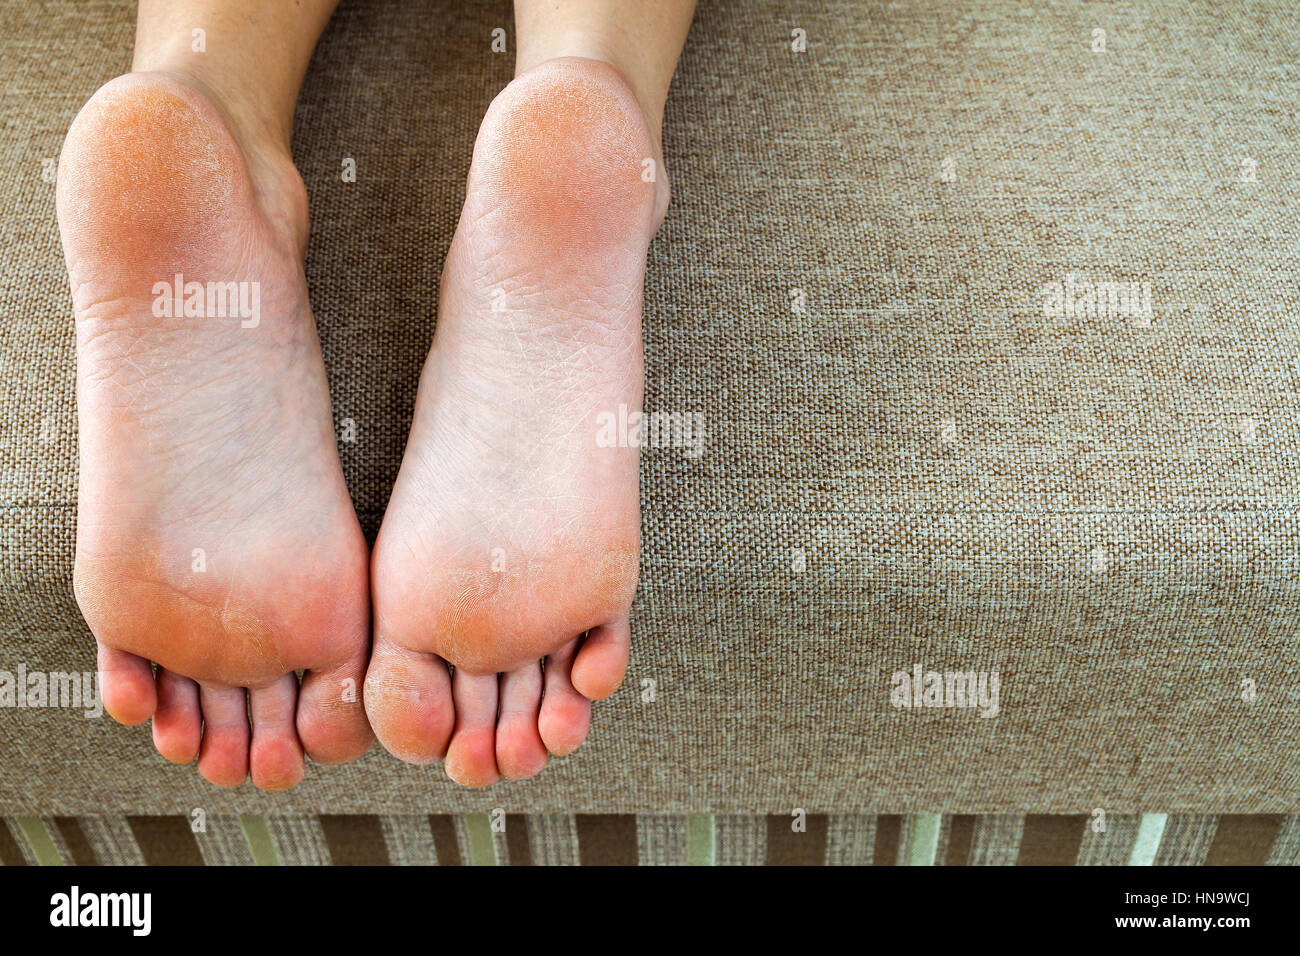 dry cracked skin of woman feet in bed foot treatment